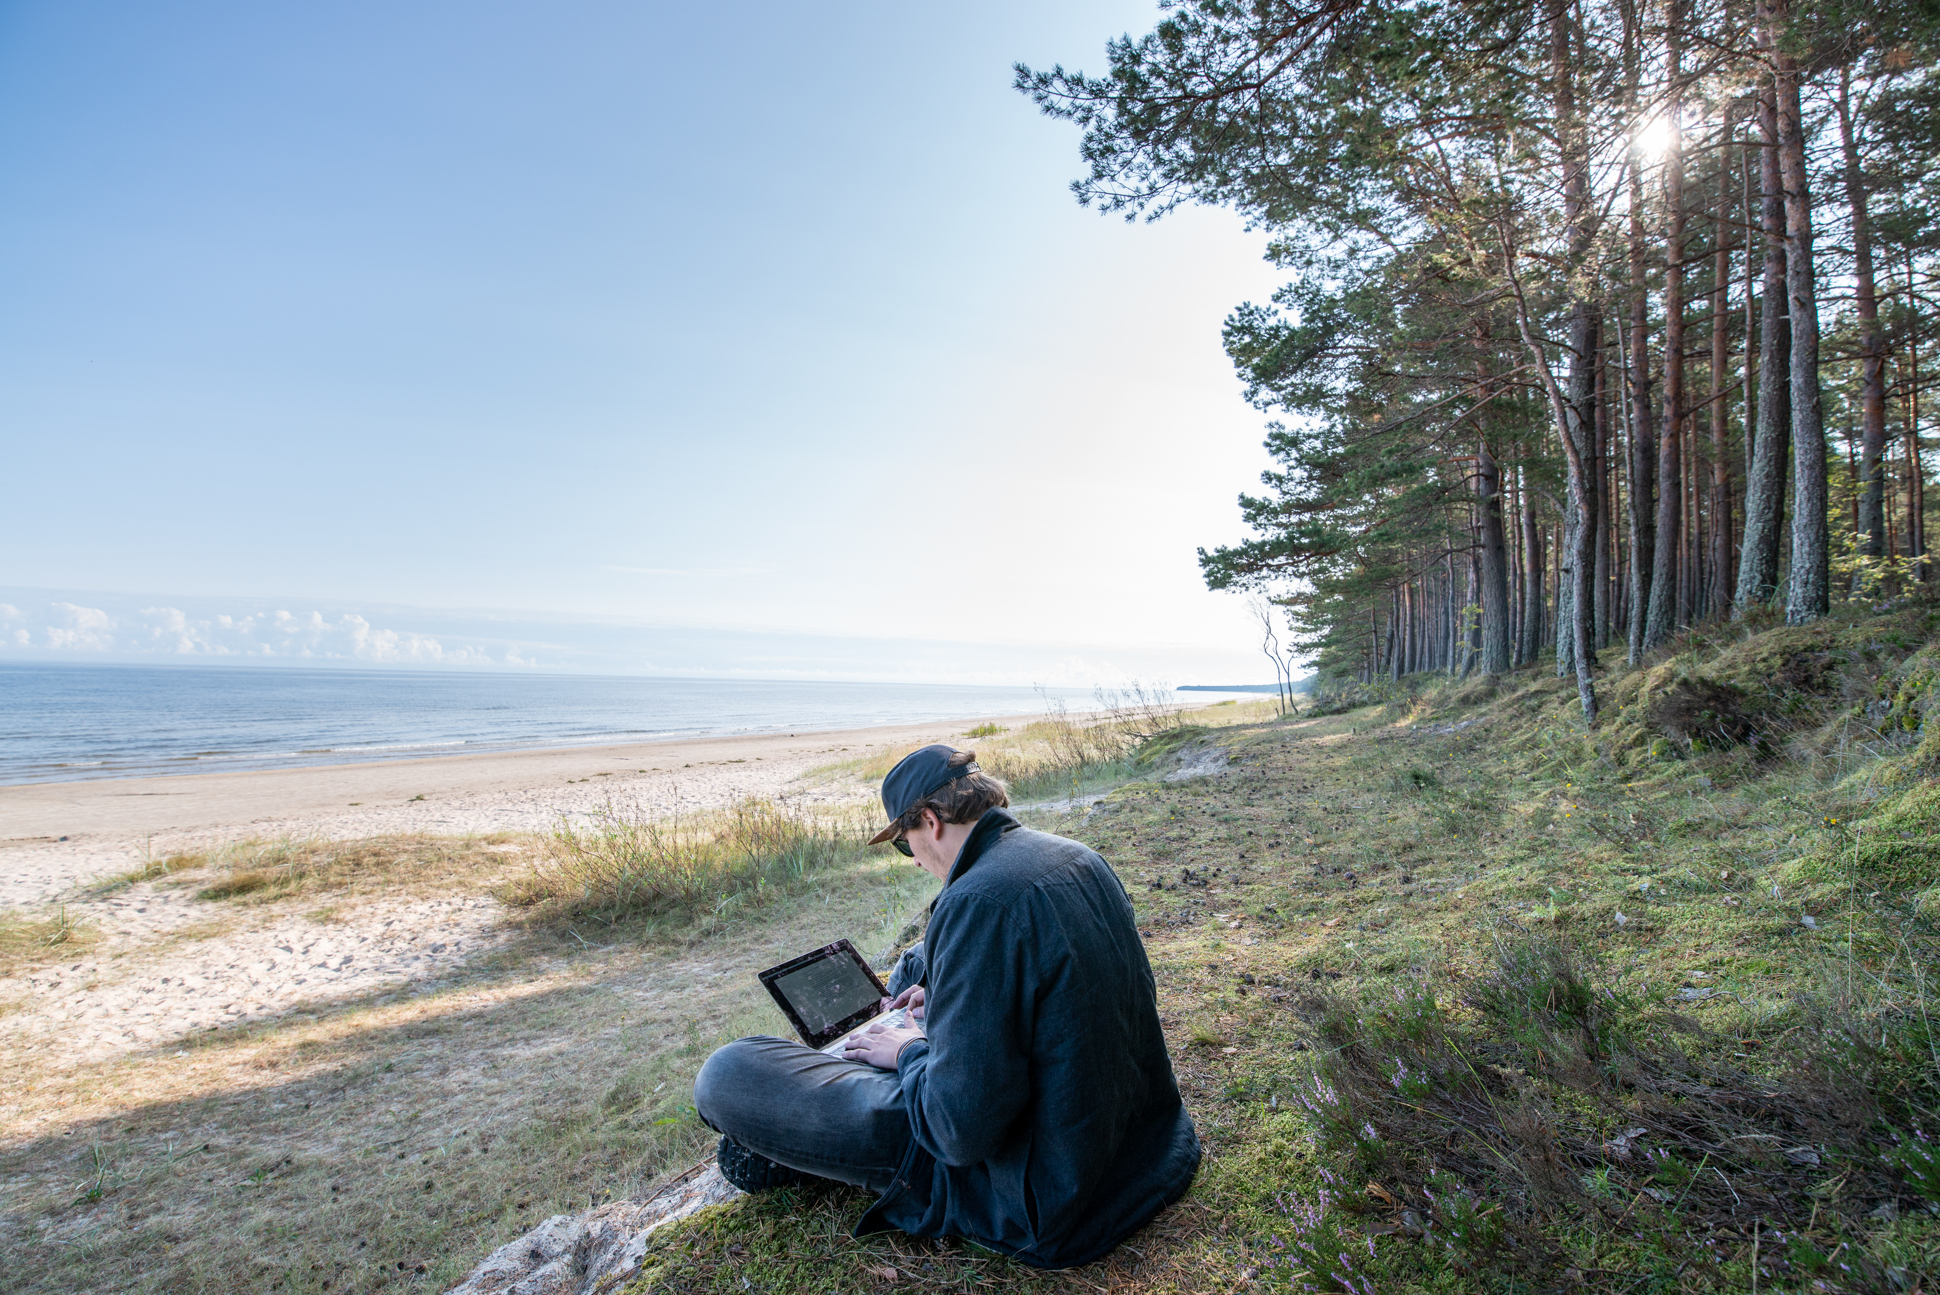 Ellis&me digital nomad in national park Kamaru, Latvia, at the ocean and close to the woods.